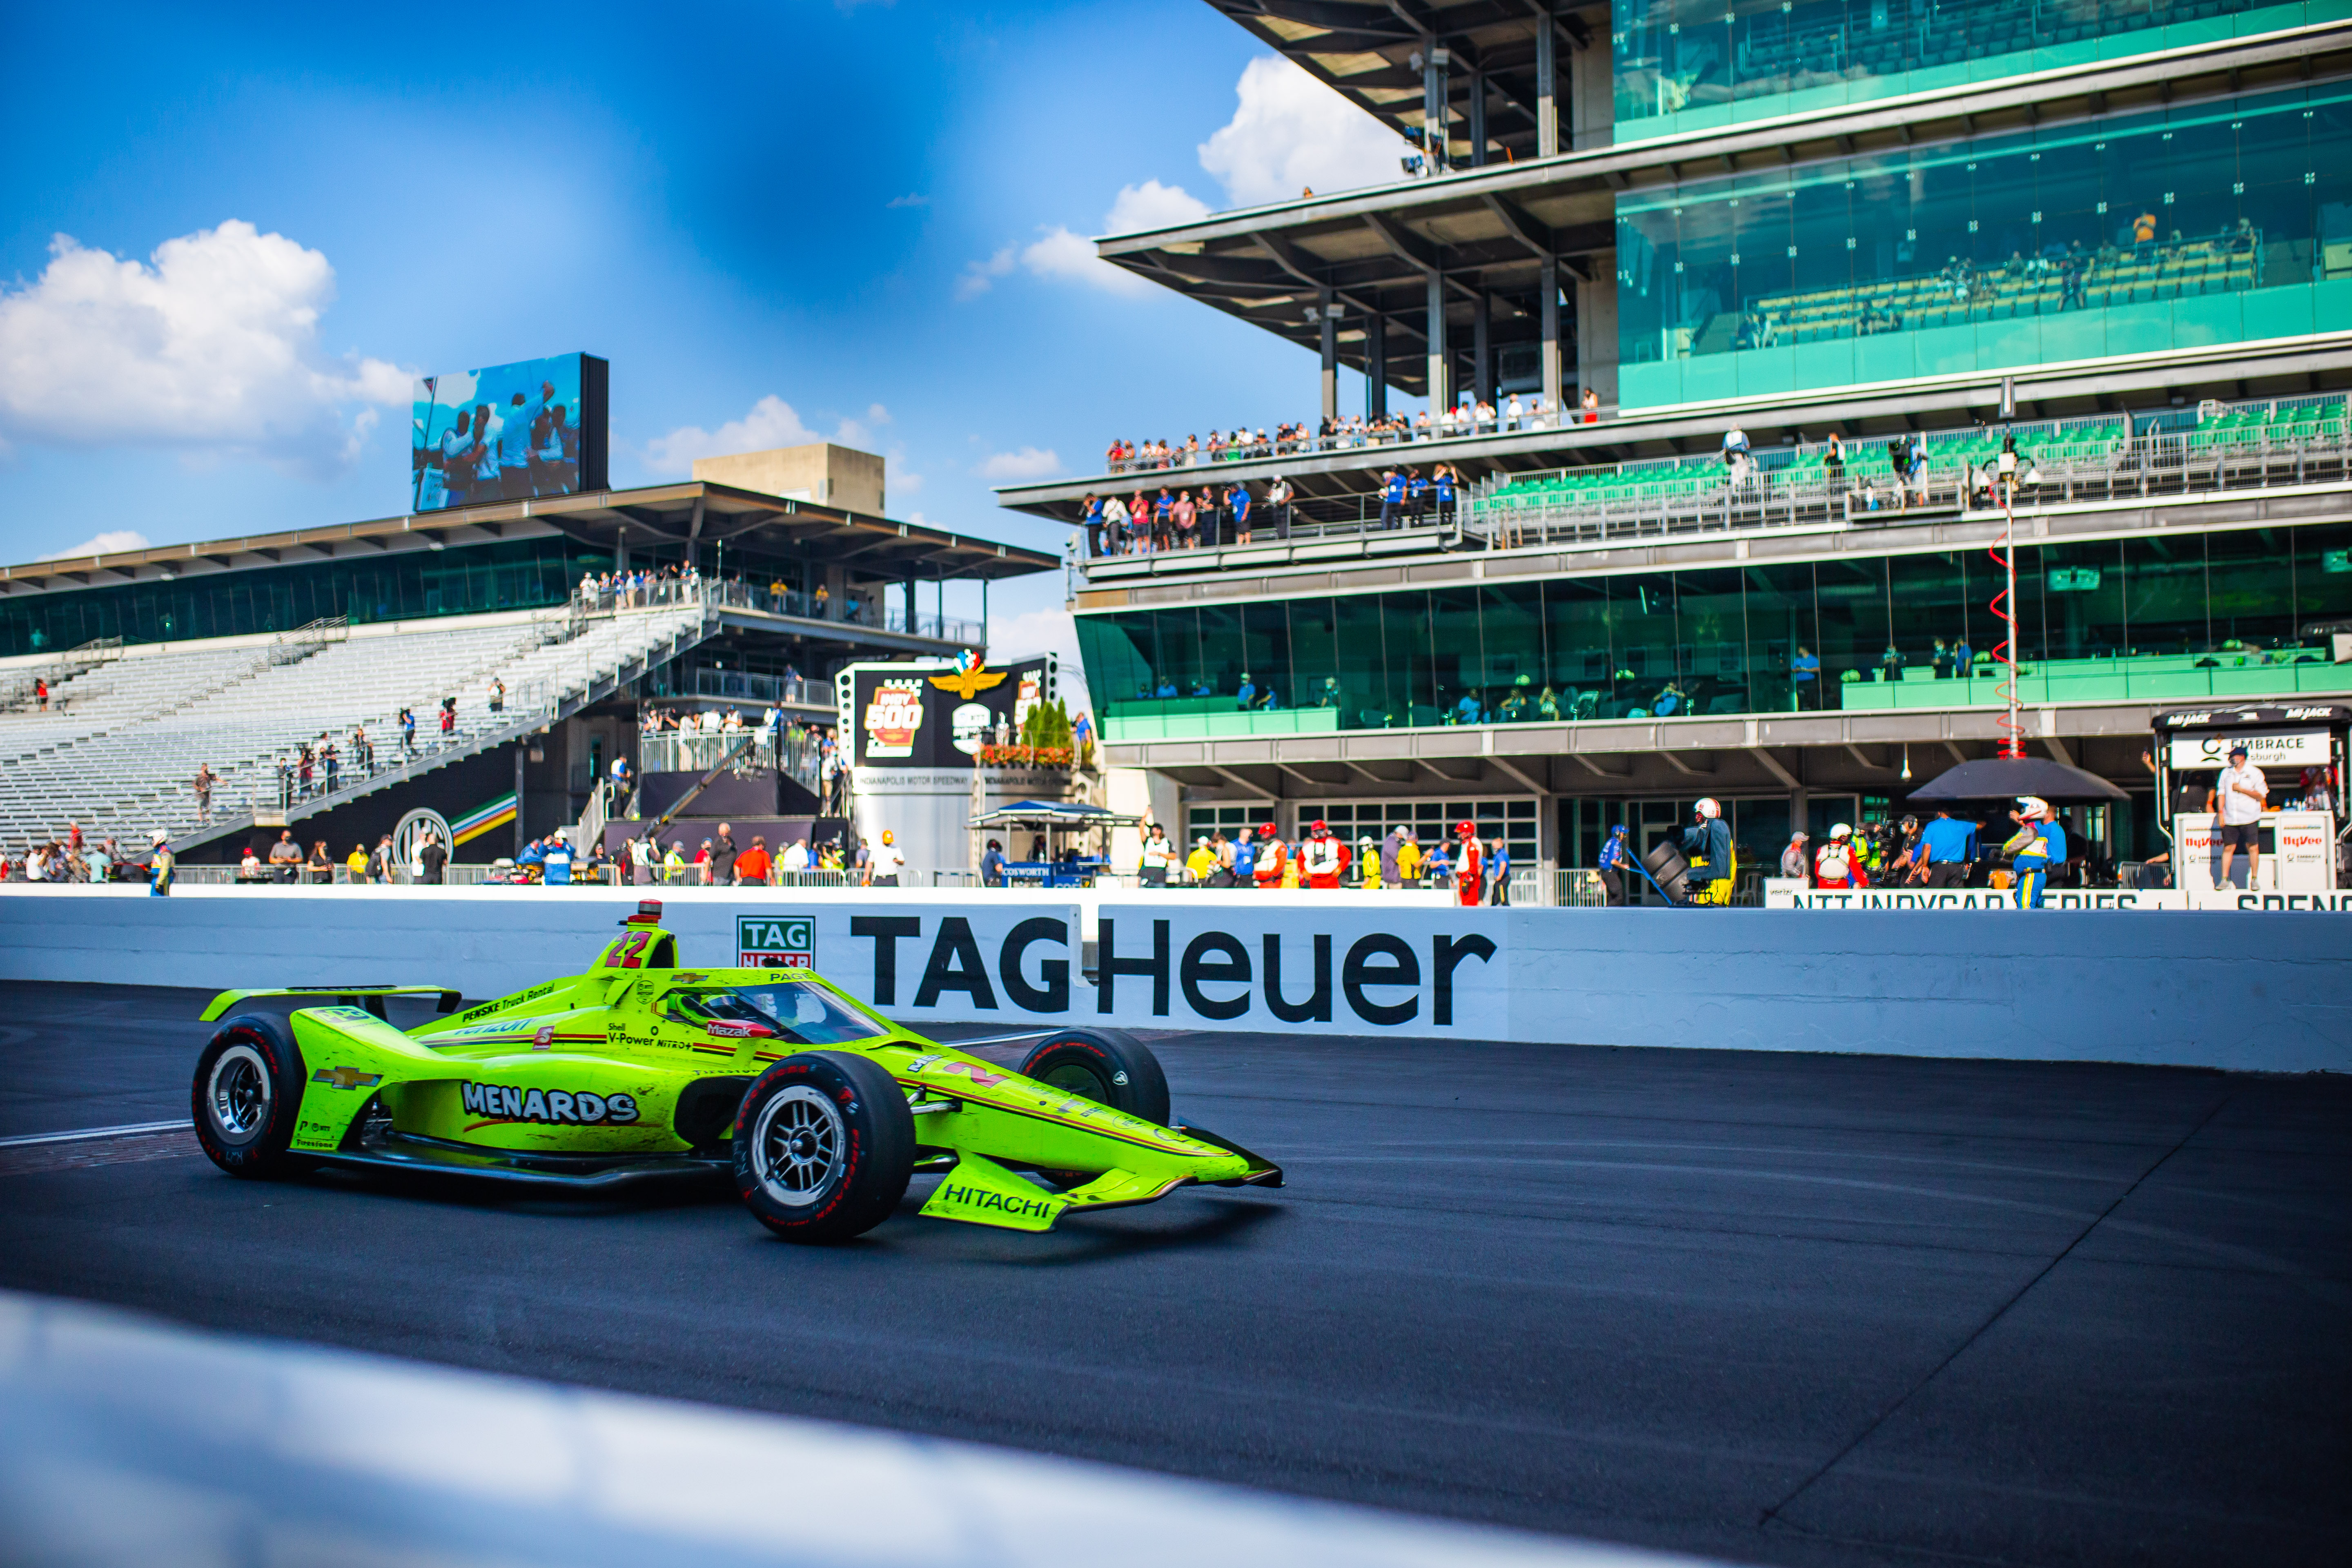 Ntt Indycar Series 104th Running Of The Indianapolis 500